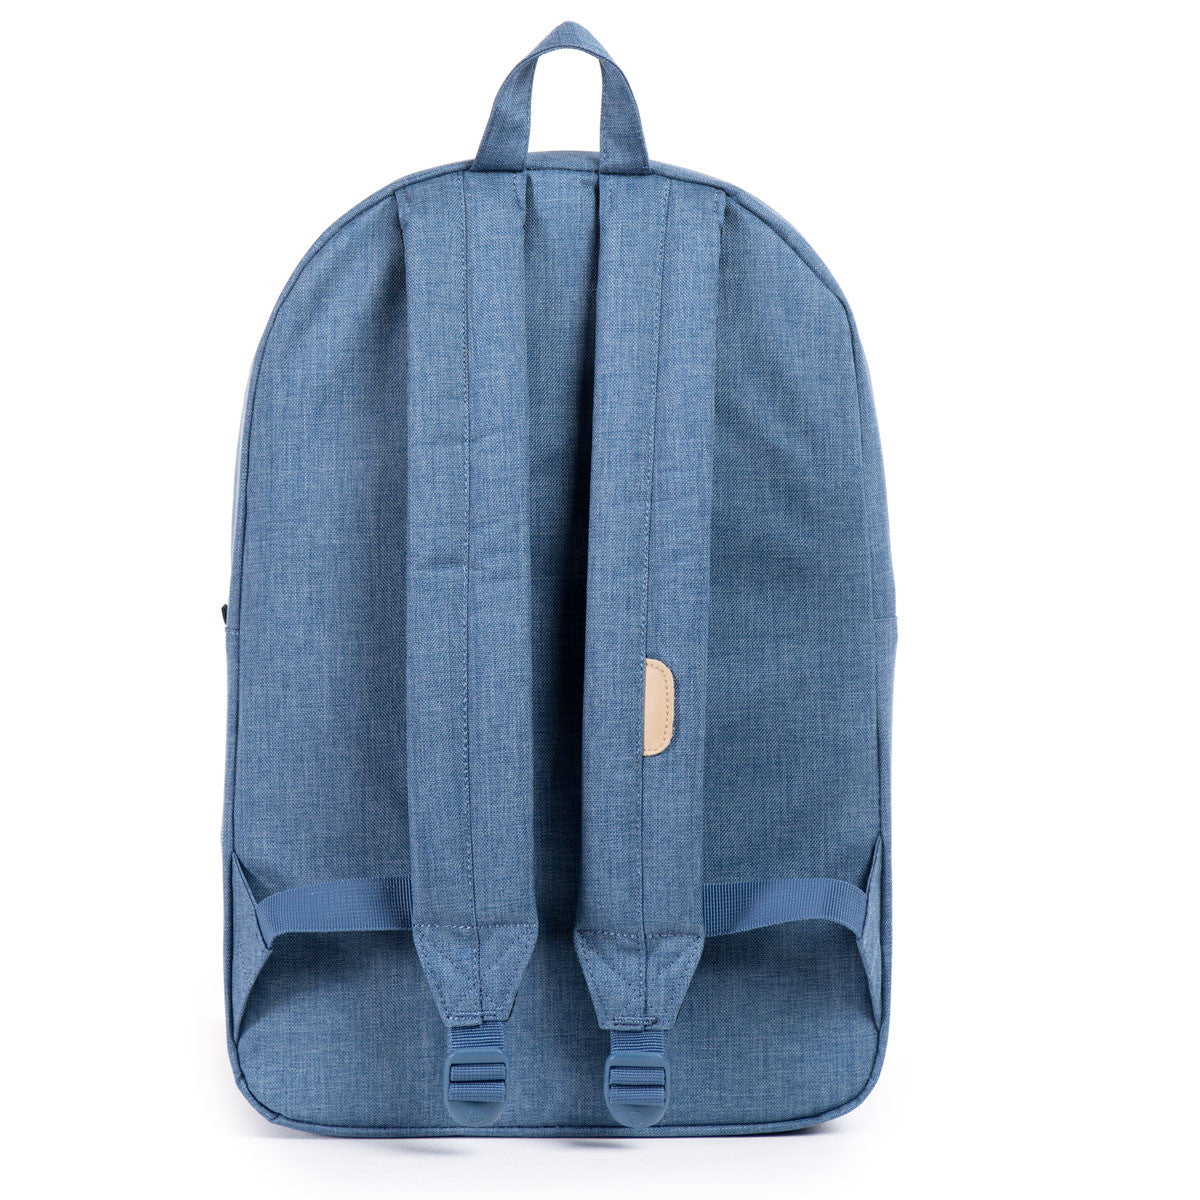 Herschel Supply Co.: Heritage Backpack - Navy / Straw Crosshatch (Ranch) back